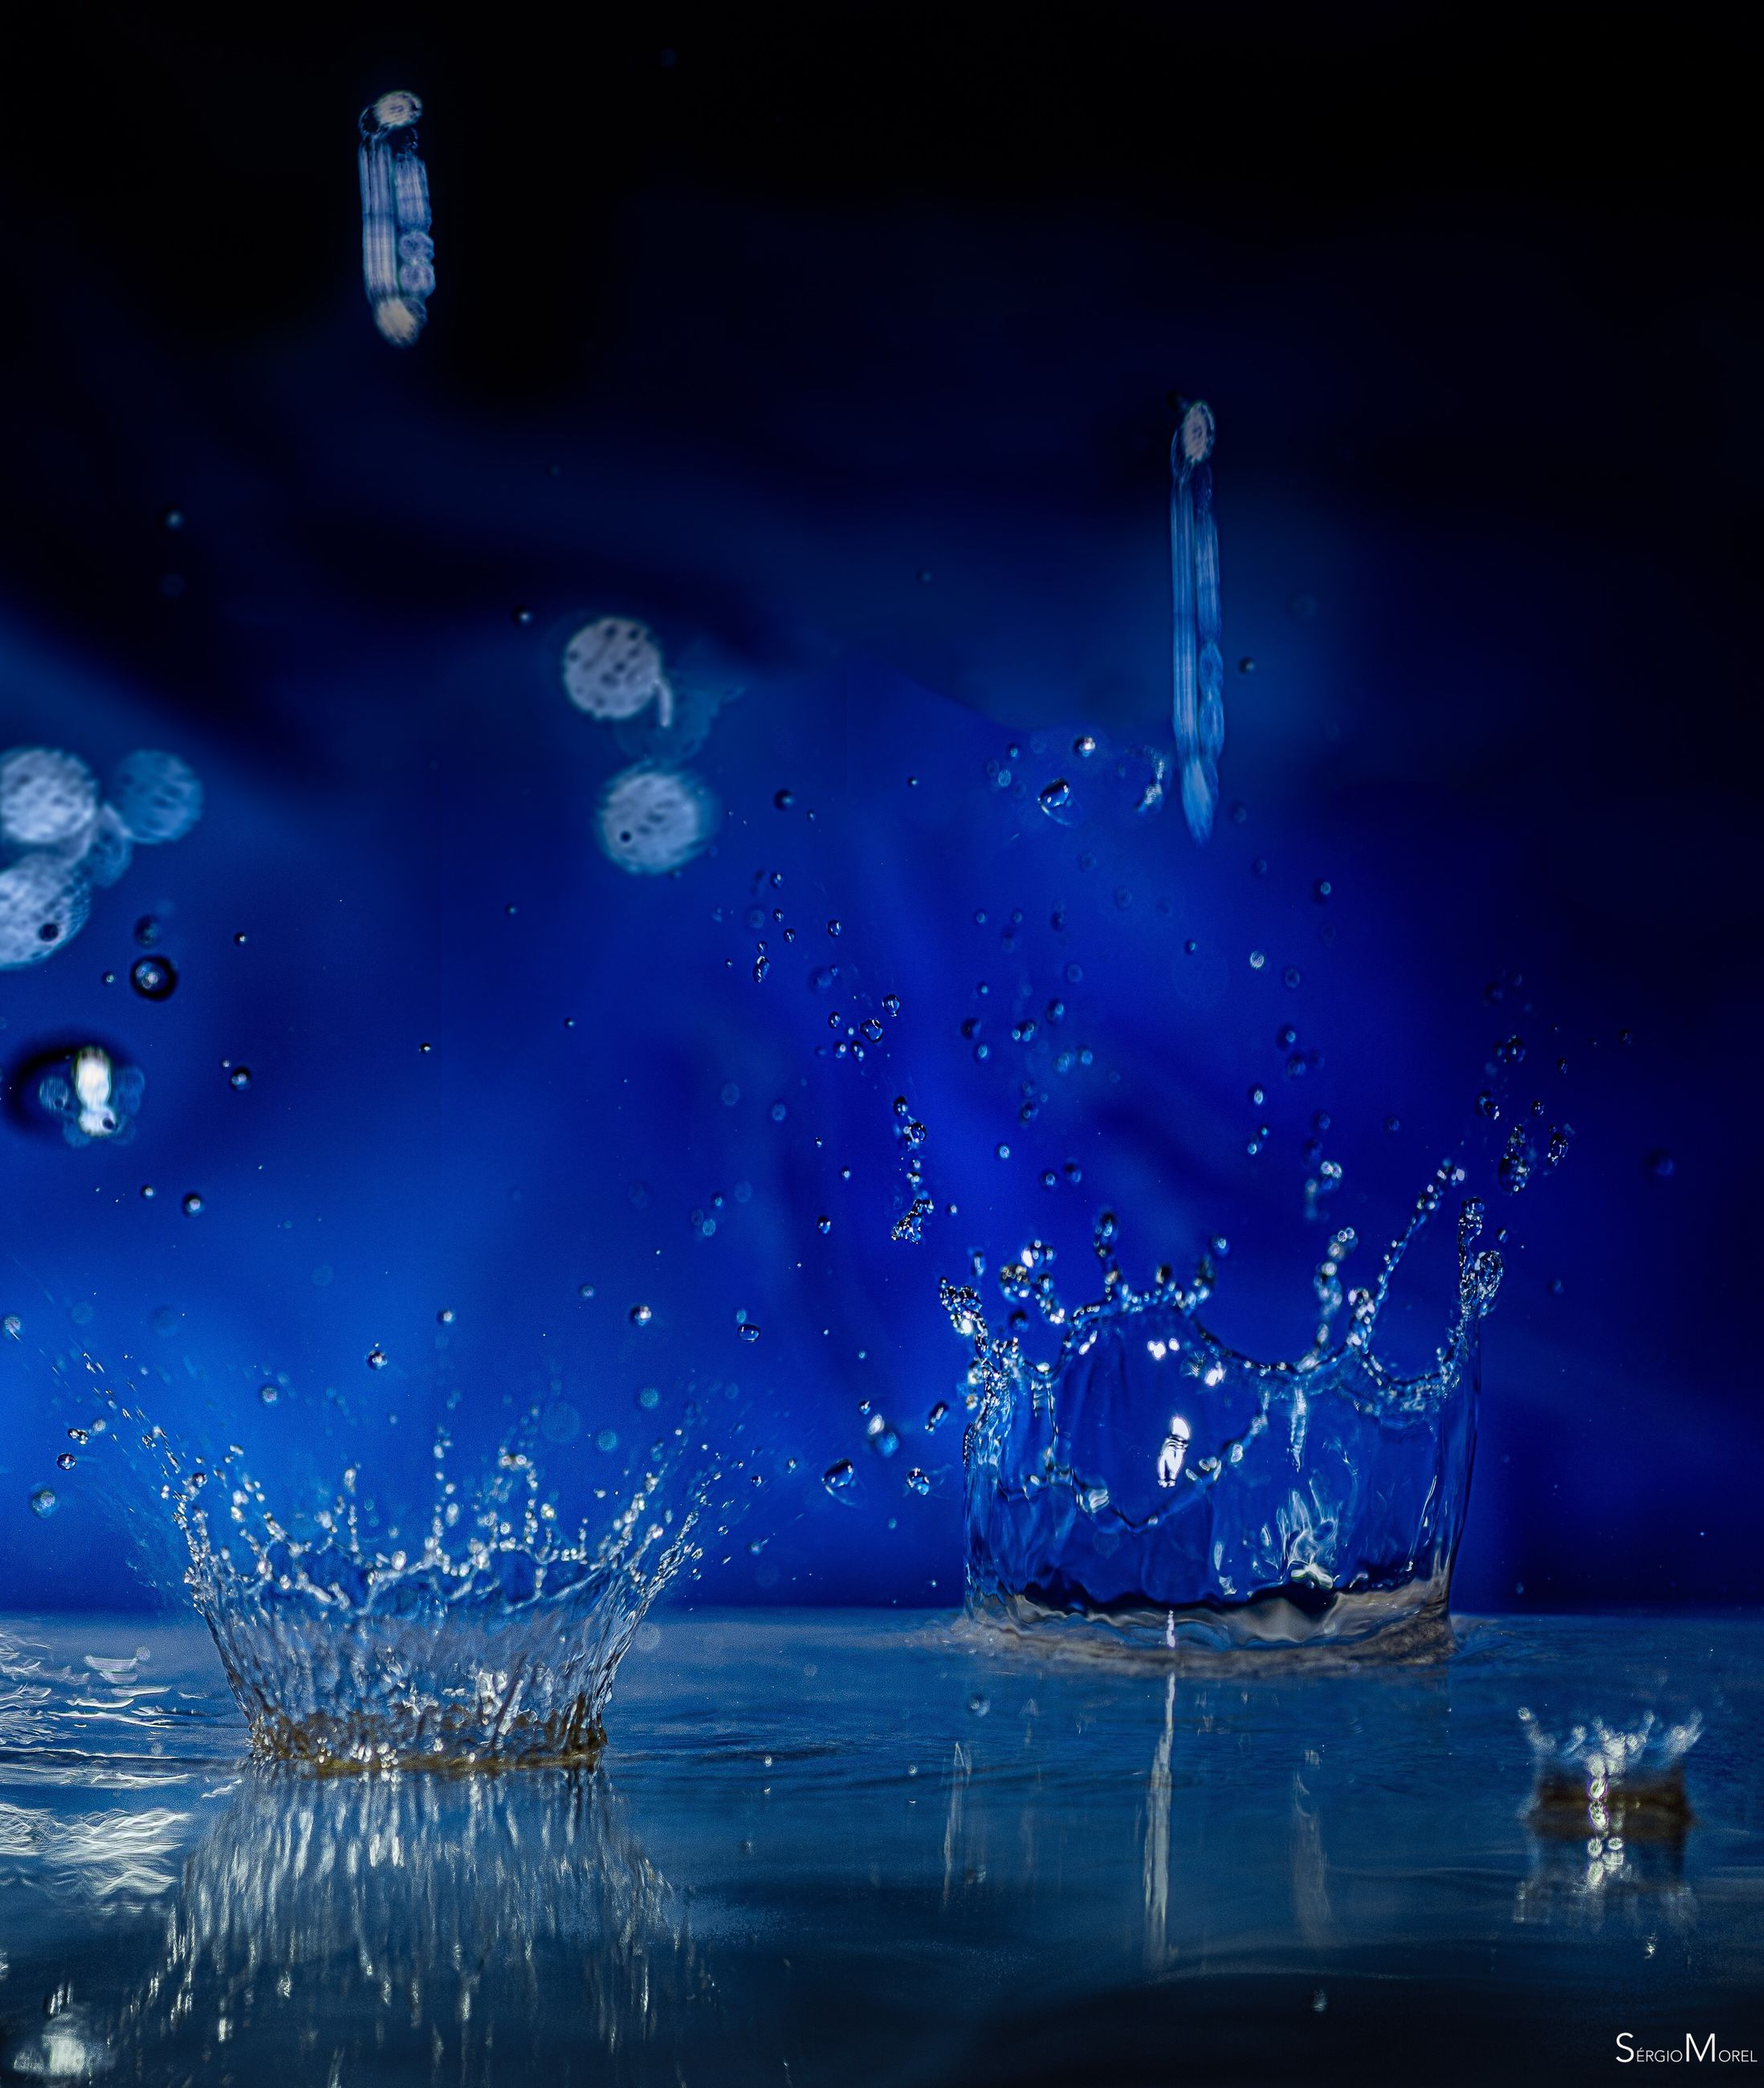 water, splashing, motion, blue, waterfront, beauty in nature, high-speed photography, sea, outdoors, no people, nature, night, sky, close-up